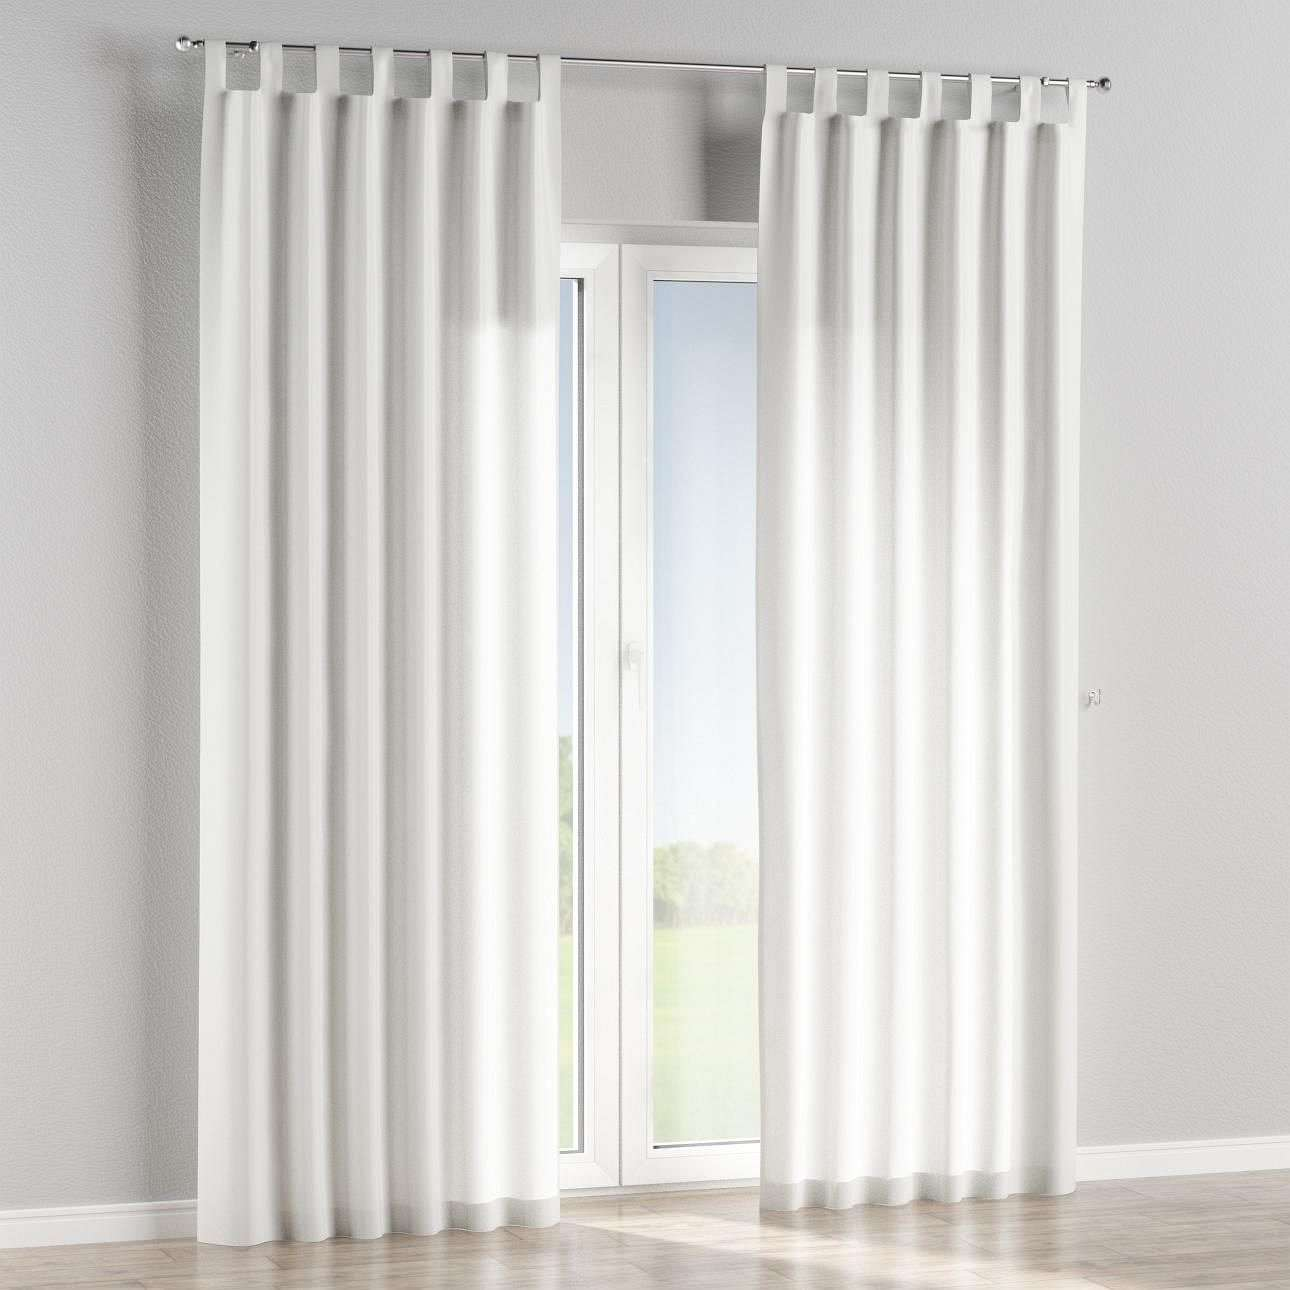 Tab top curtains in collection Flowers, fabric: 311-06